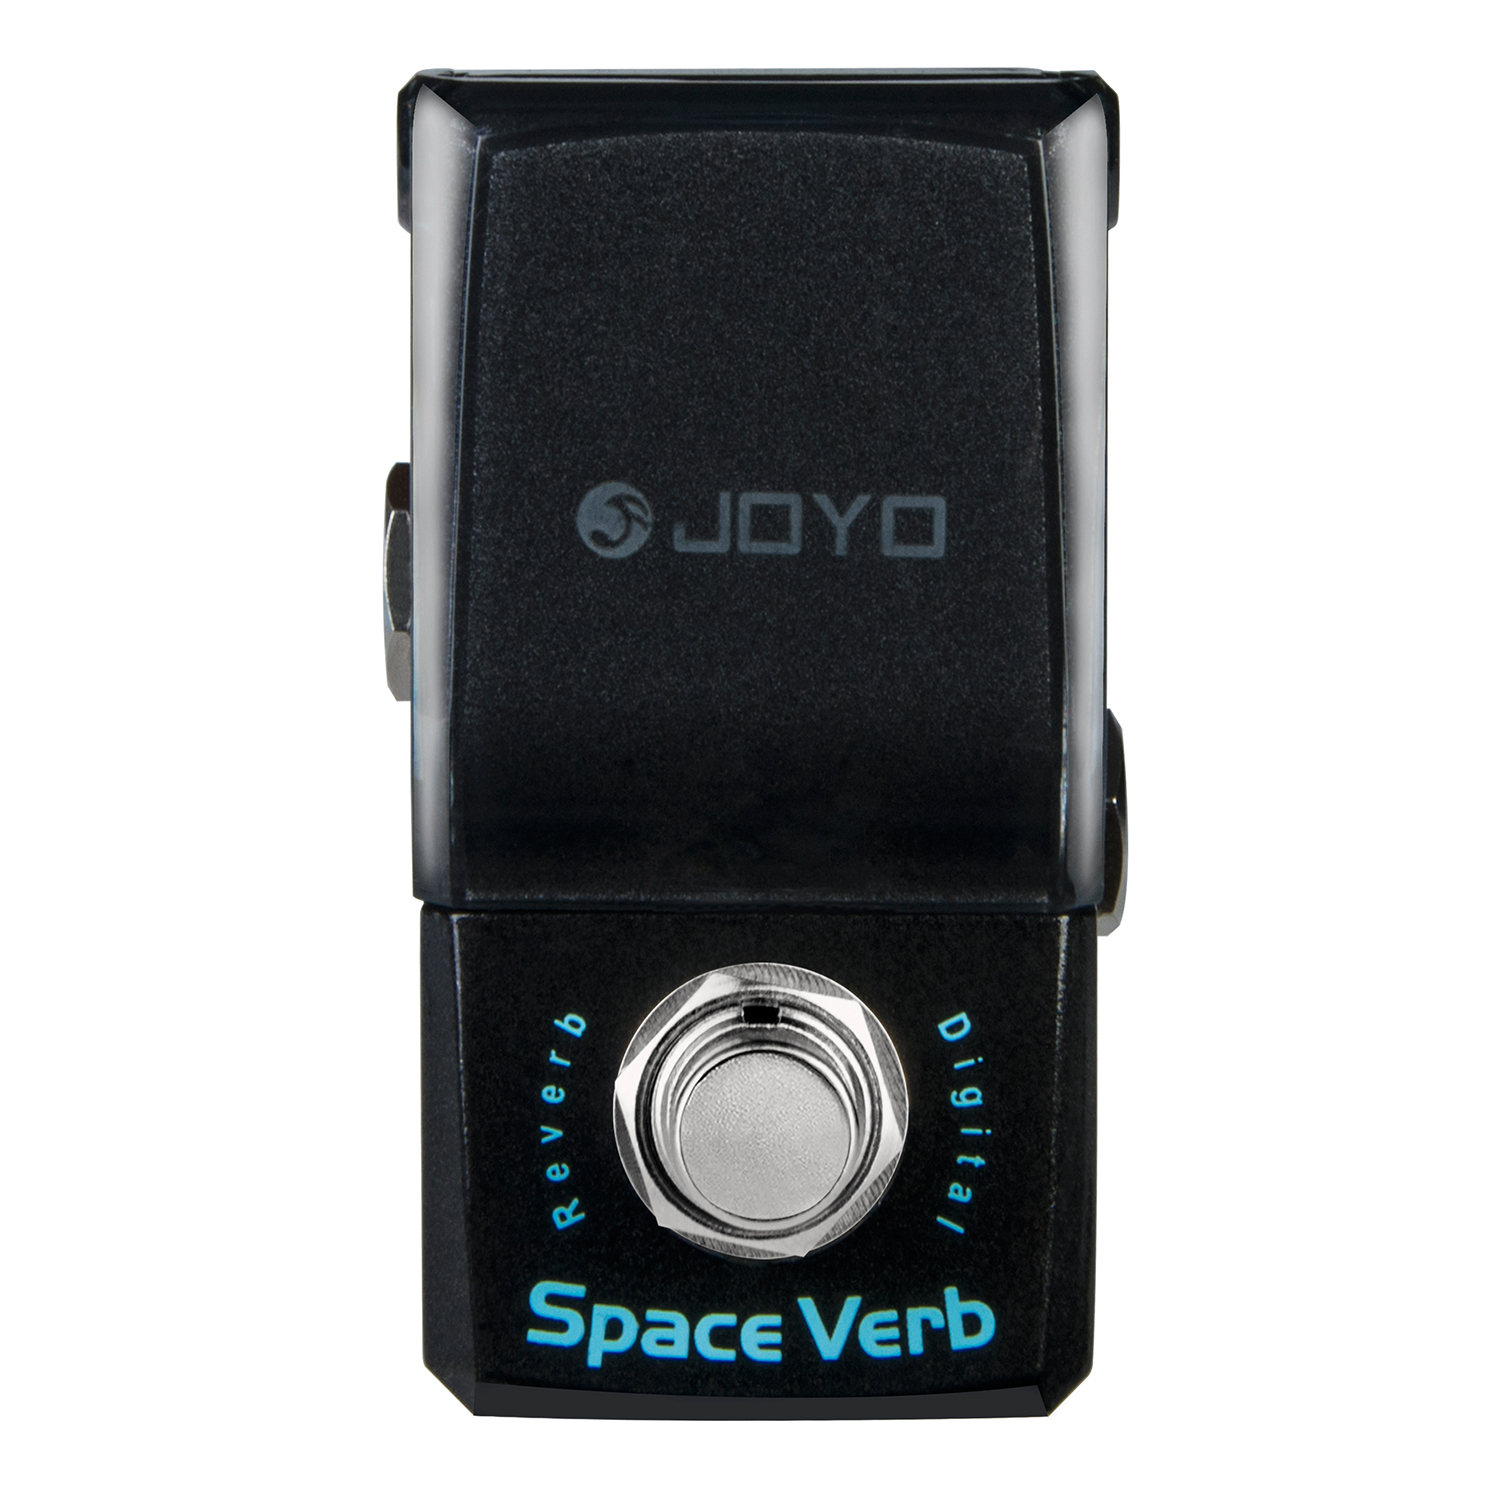 Joyo Ironman JF-317 Space Verb Digital Reverb Guitar Effect Pedal True Bypass dobson c french verb handbook